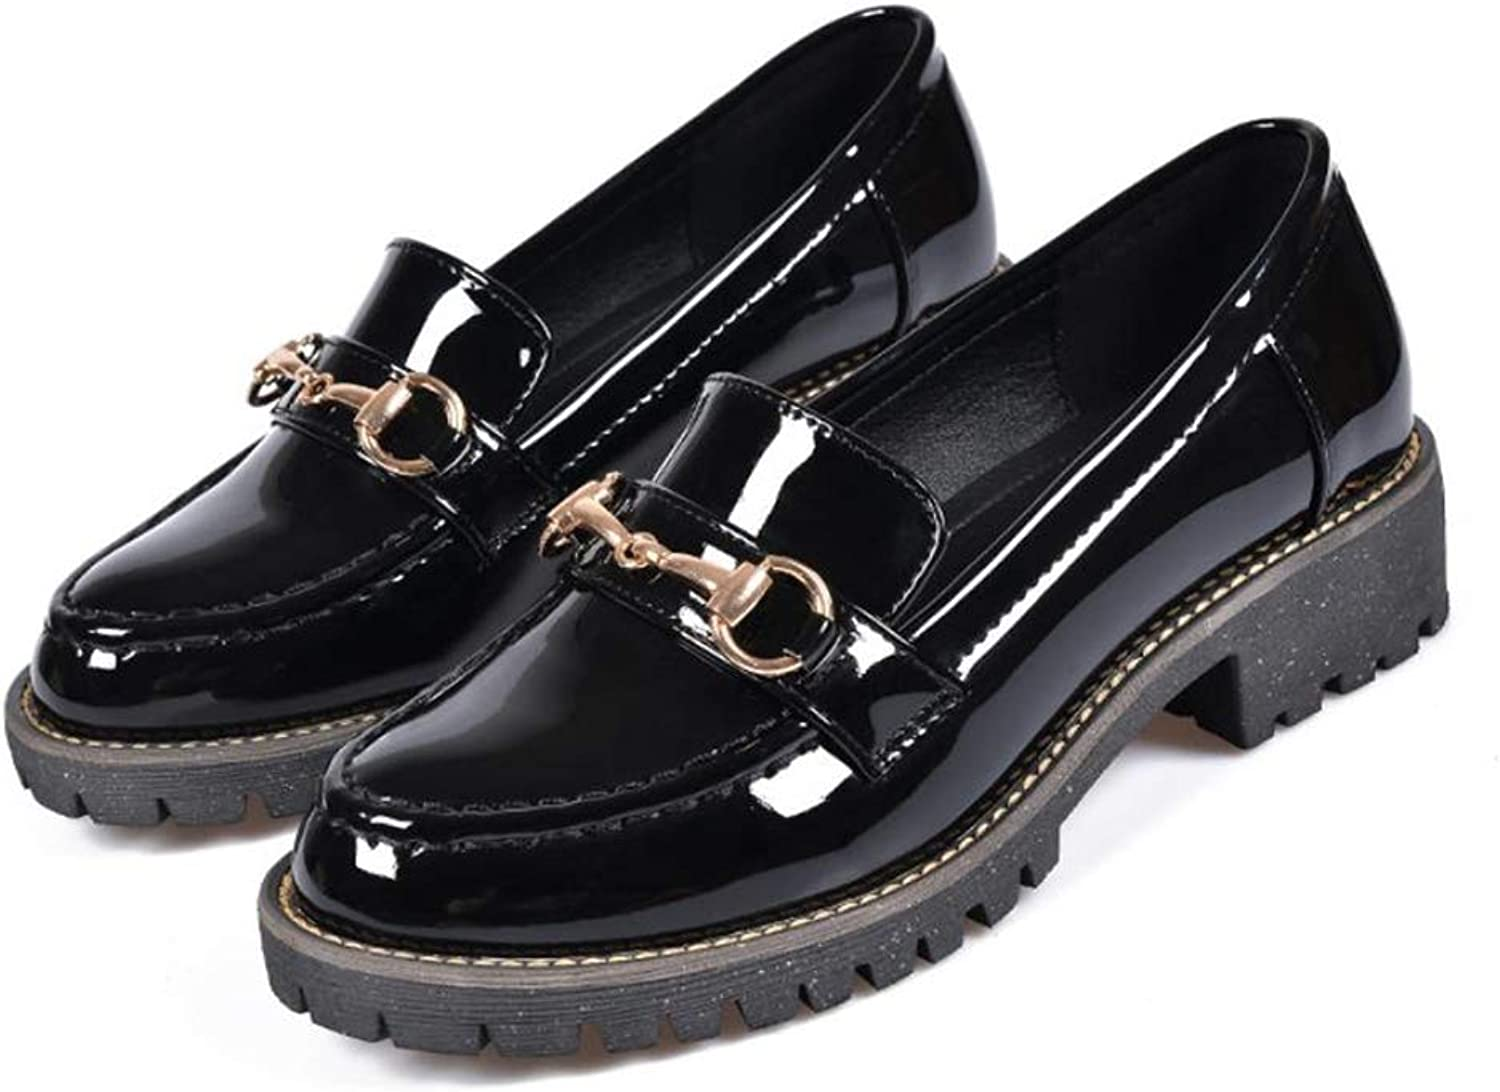 Dolwins Women's Low Heel Bow Patent Leather Slip On shoes